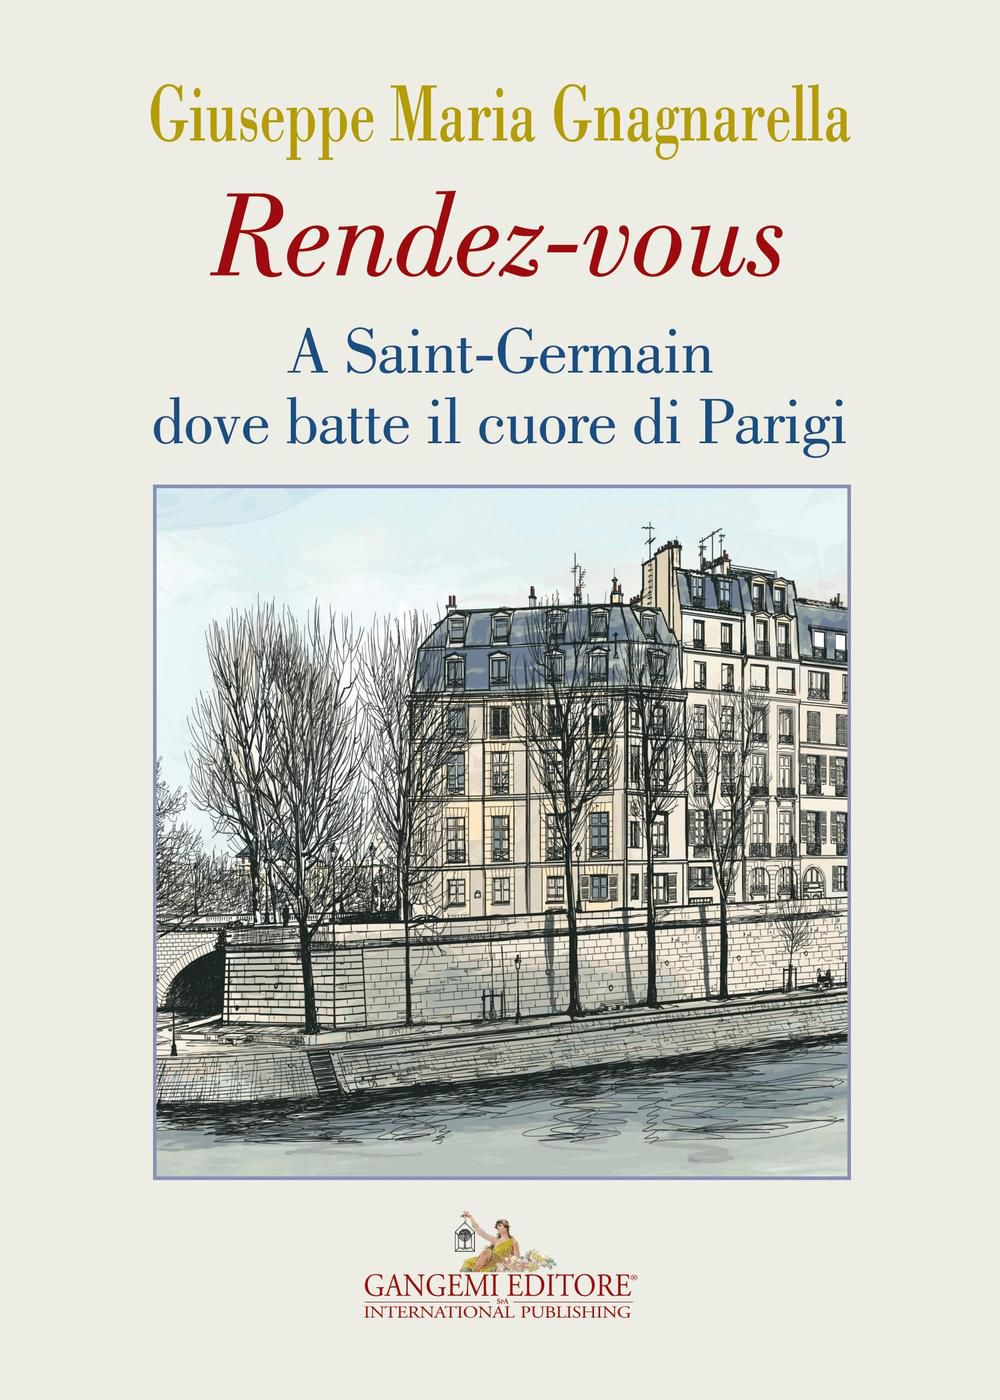 Rendez-vous a Saint-Germain dove batte il cuore di Parigi Book Cover